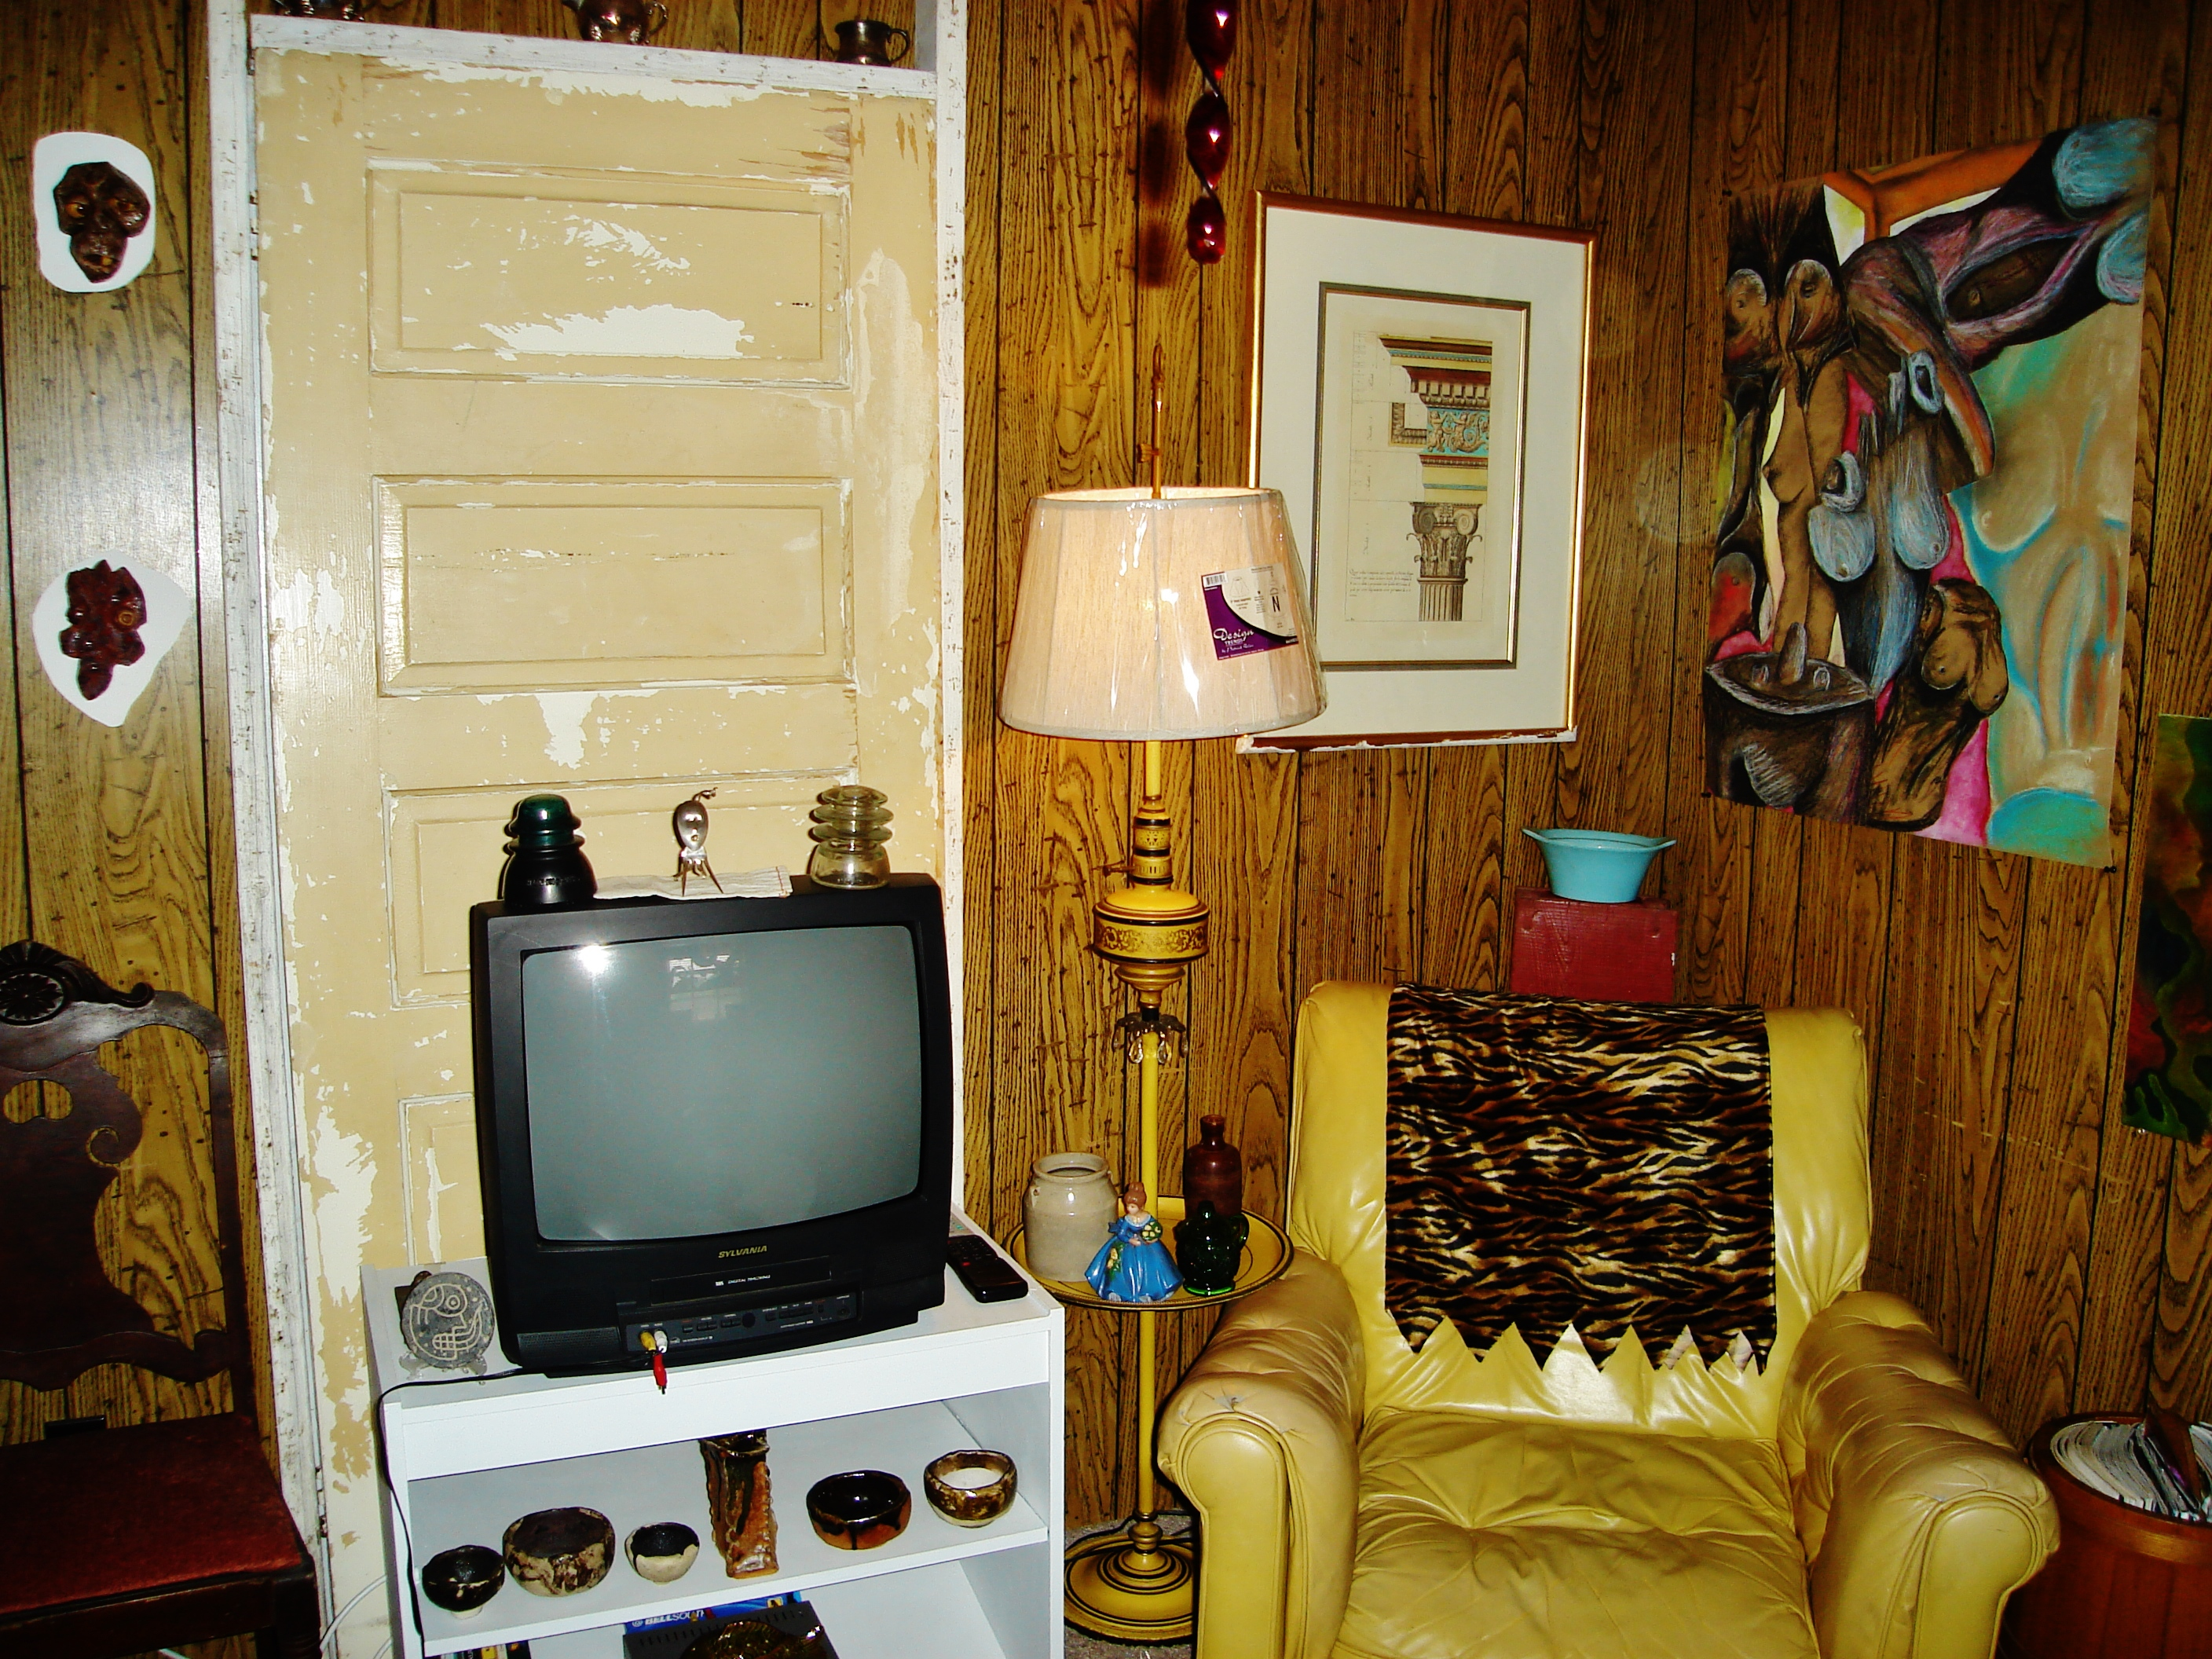 The Lair of the Undergraduate, 2006.